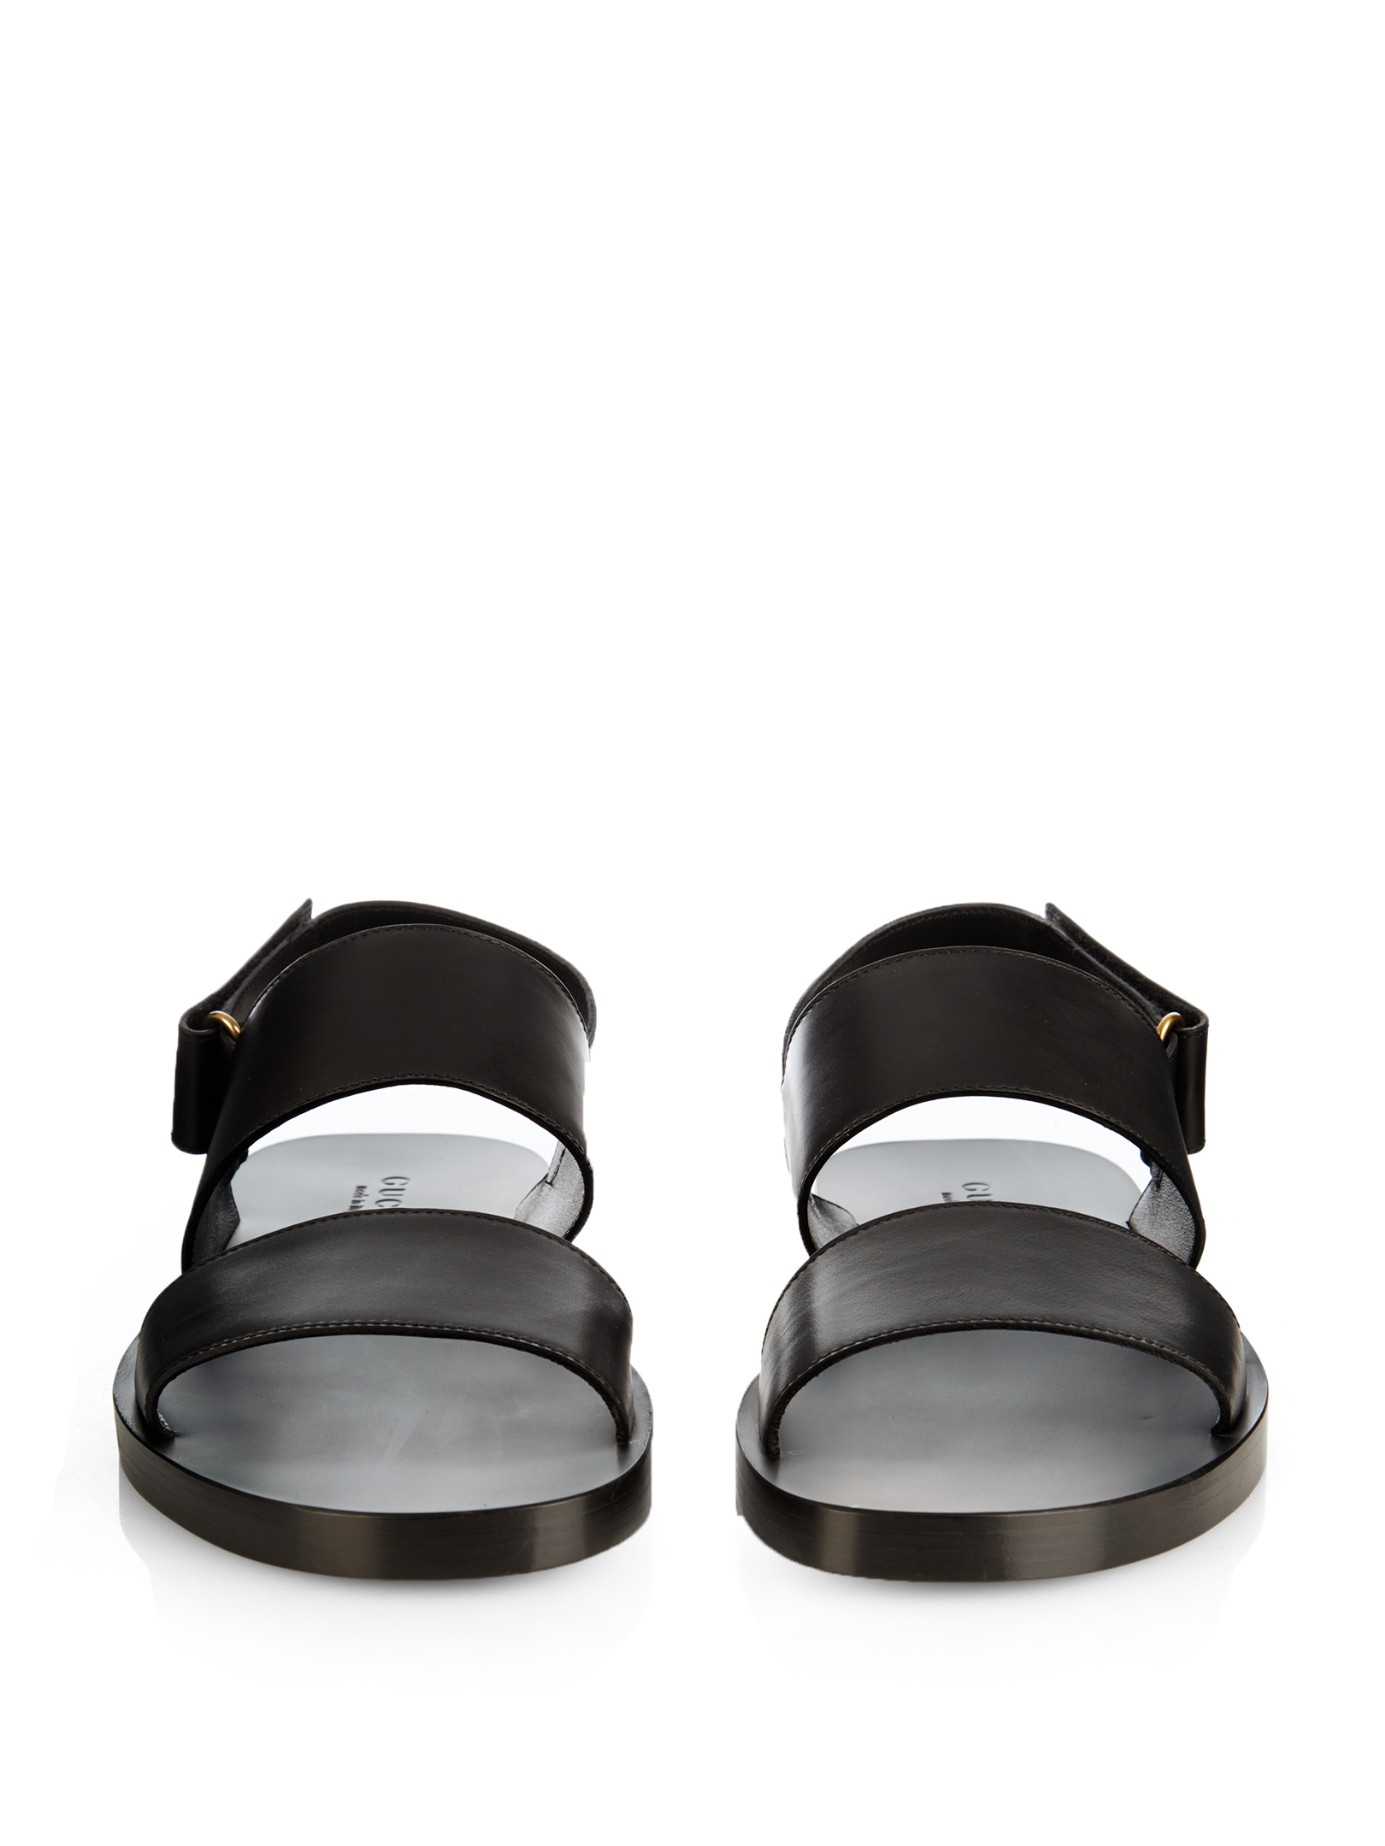 Gucci Double-Strap Leather Sandals in